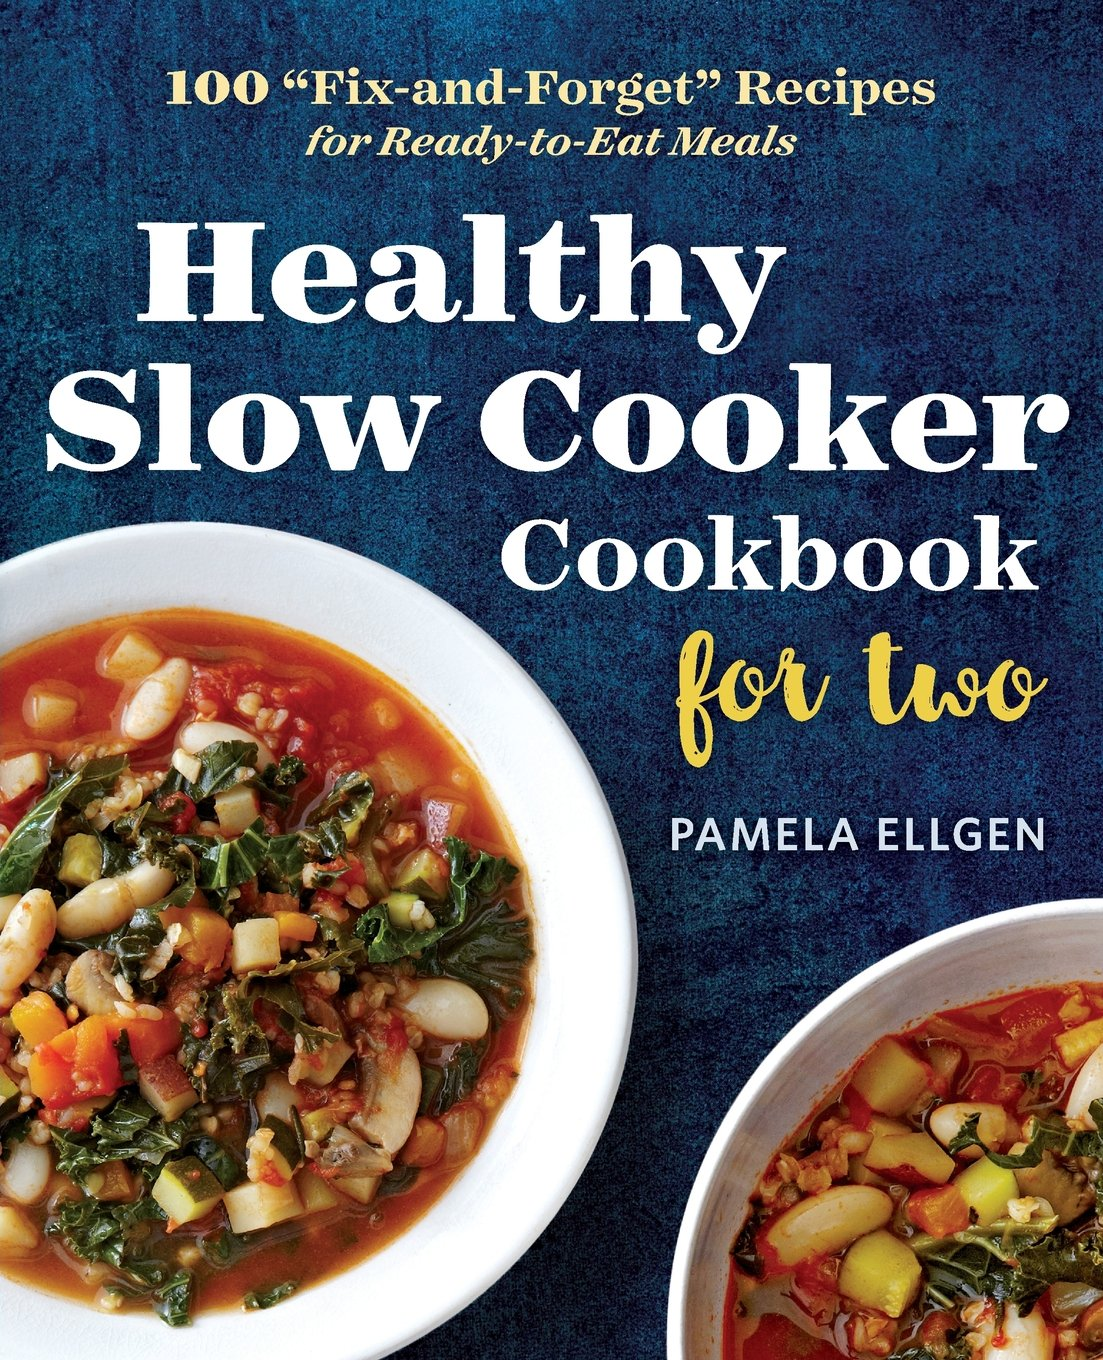 Healthy Slow Cooker Cookbook for Two: 100 \